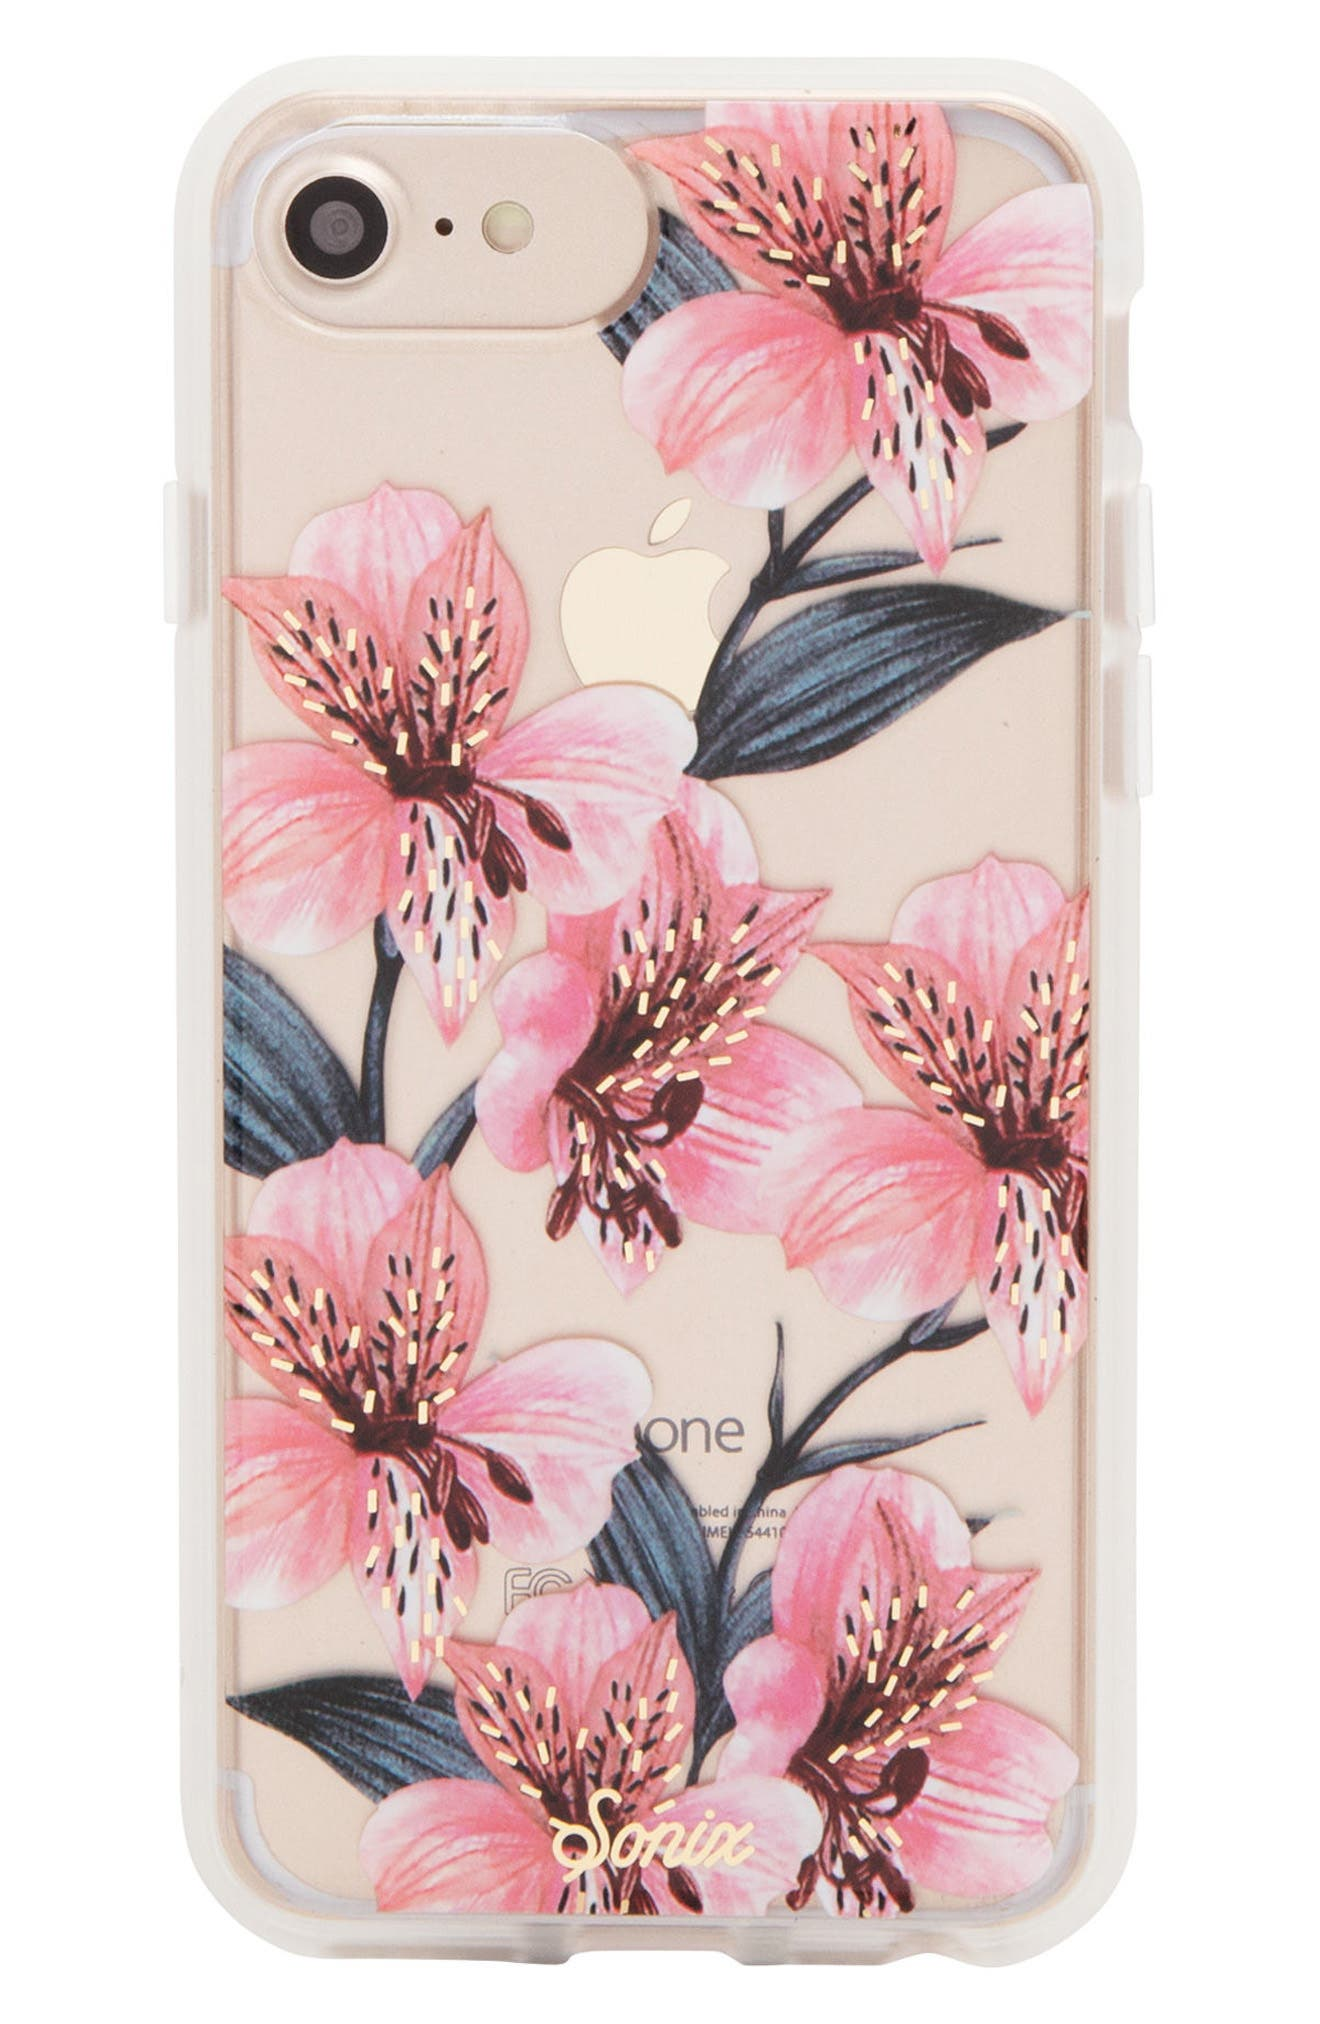 Alternate Image 1 Selected - Sonix Tiger Lily iPhone 6/6s/7/8 & 6/6s/7/8 Plus Case